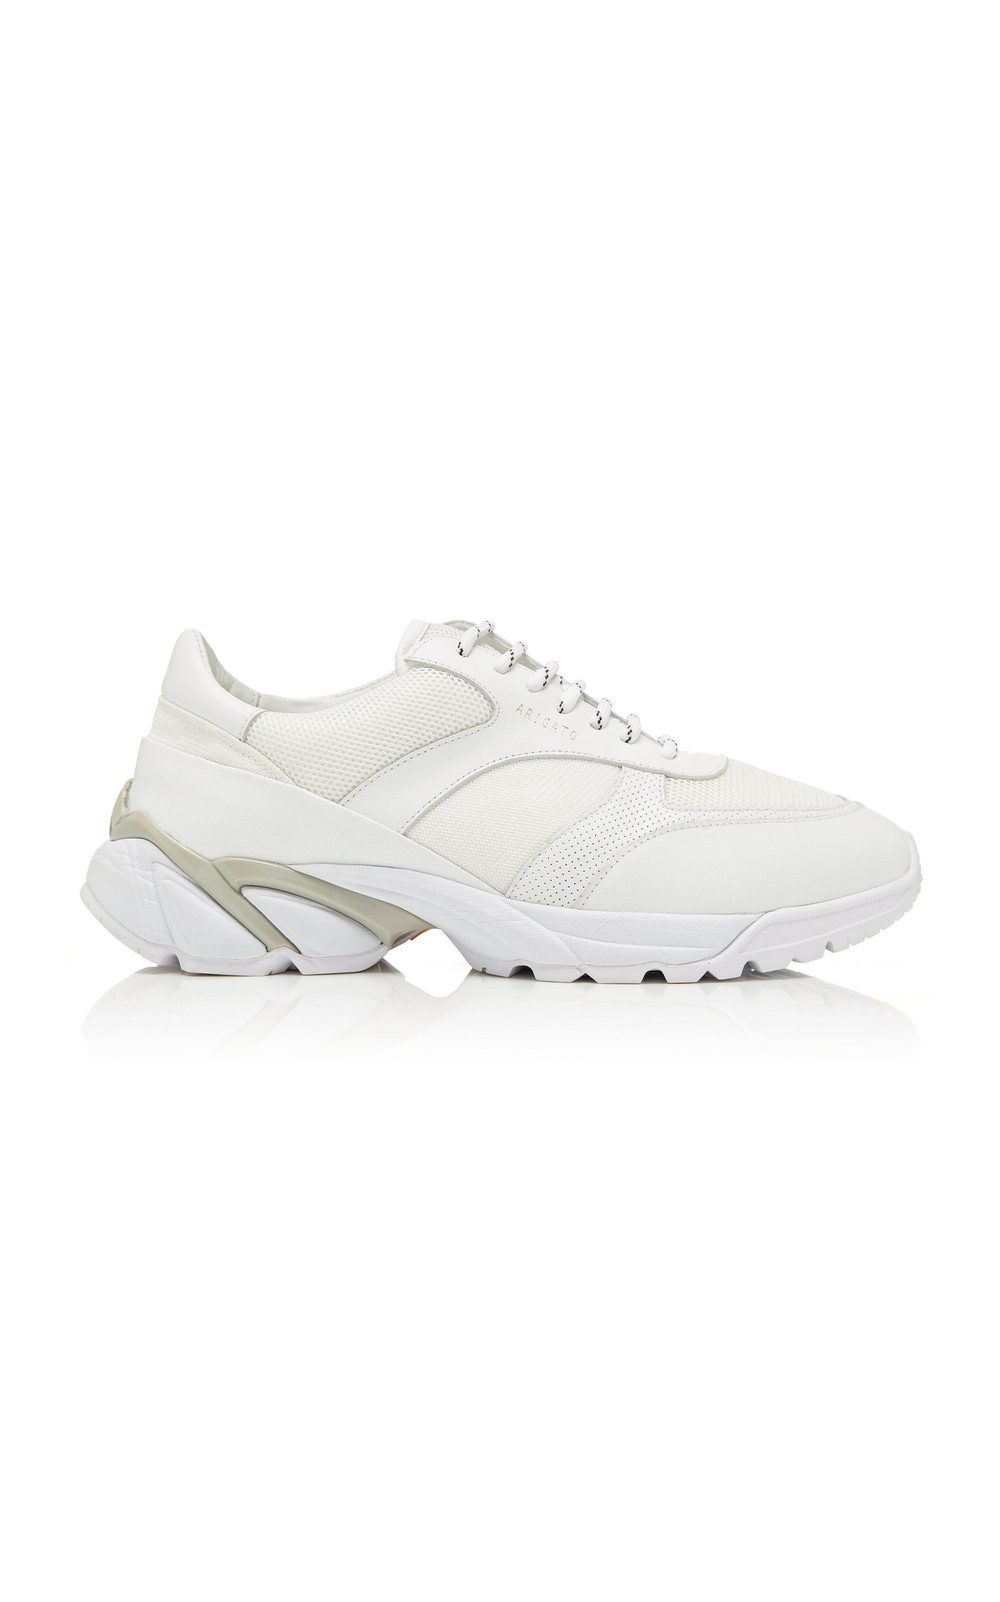 Axel Arigato Tech Runner Core Leather-Trimmed Mesh Sneakers in white